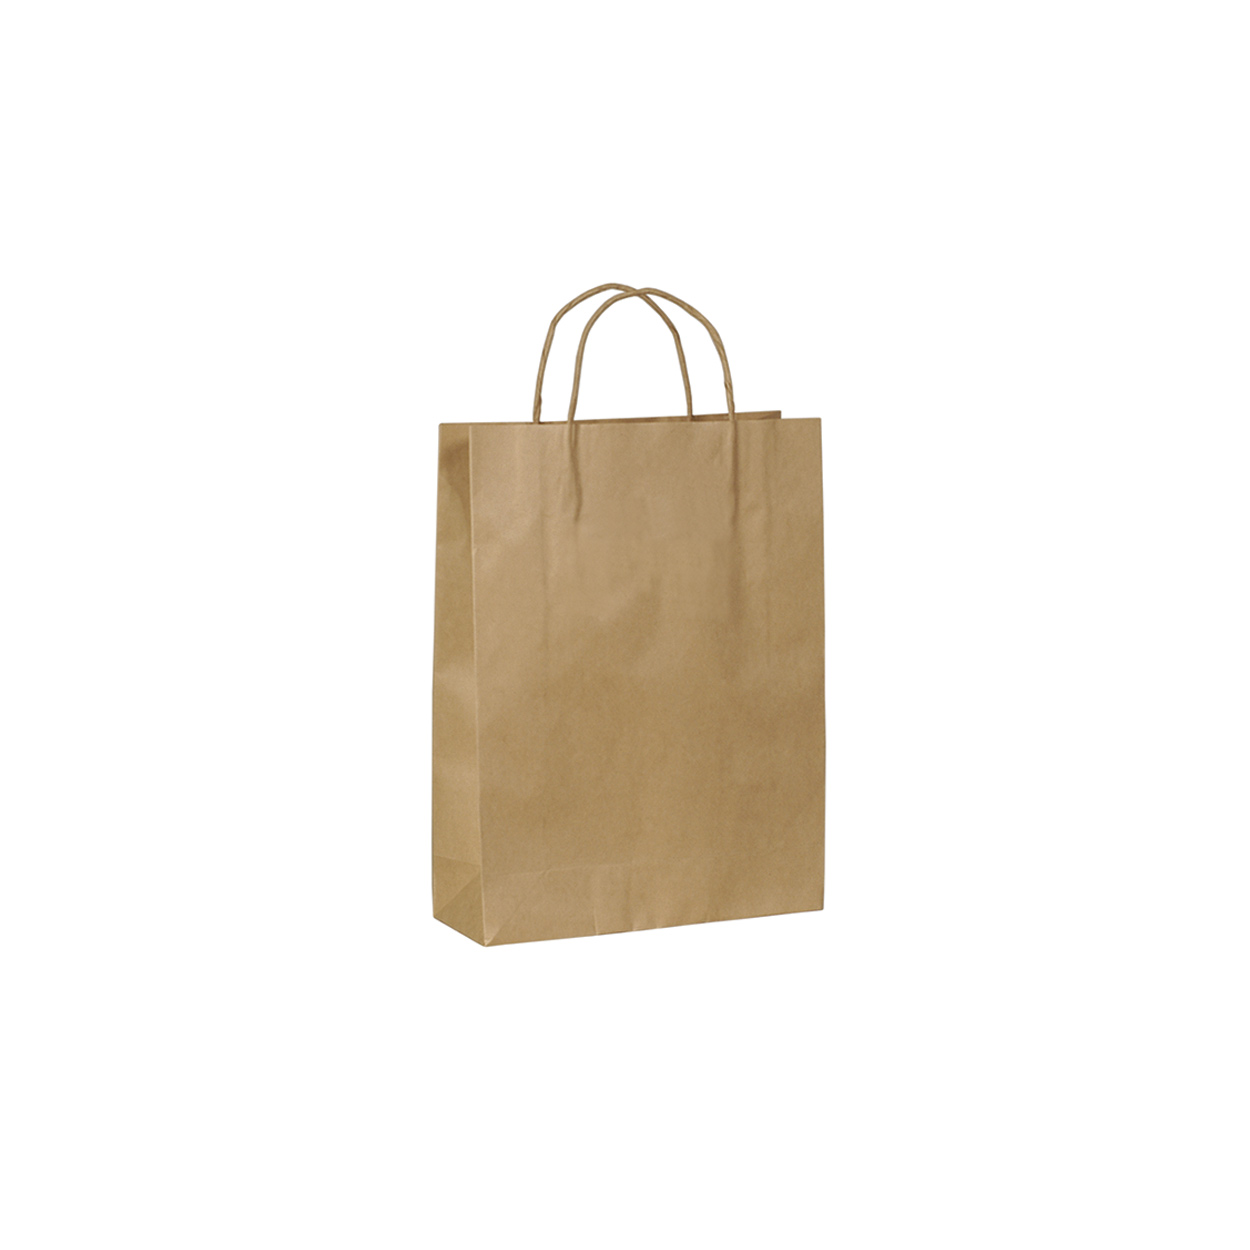 Image result for shops using paper bags